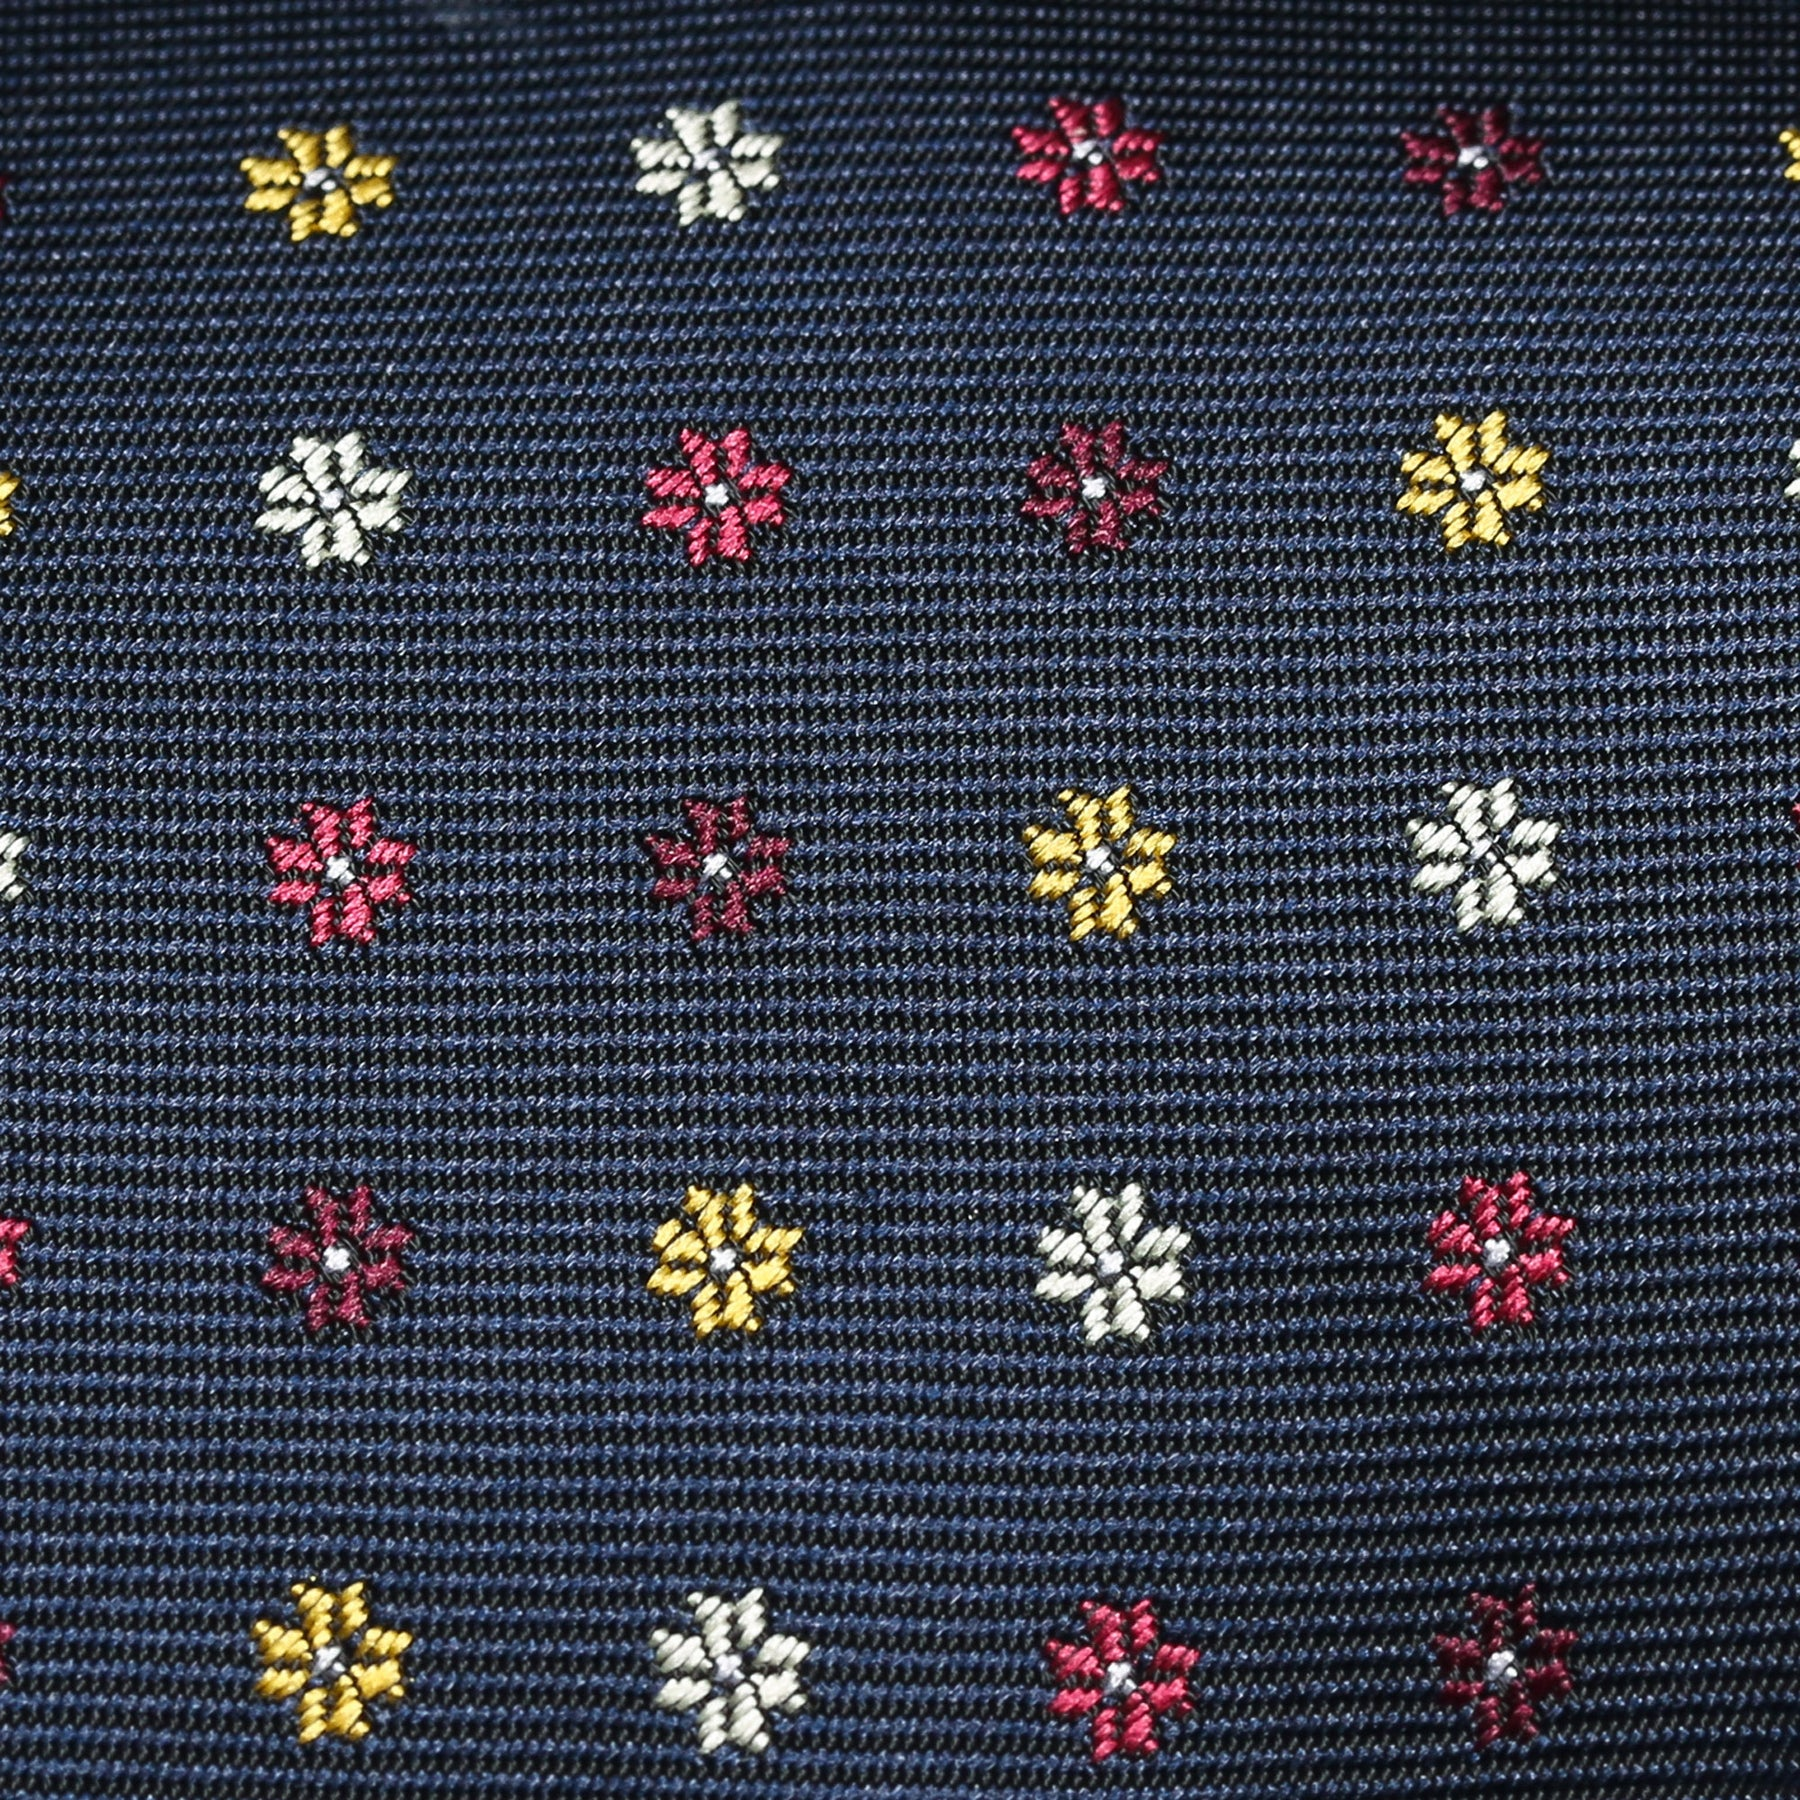 Dark Navy And Yellow Mini Neat Floral Classic Tie